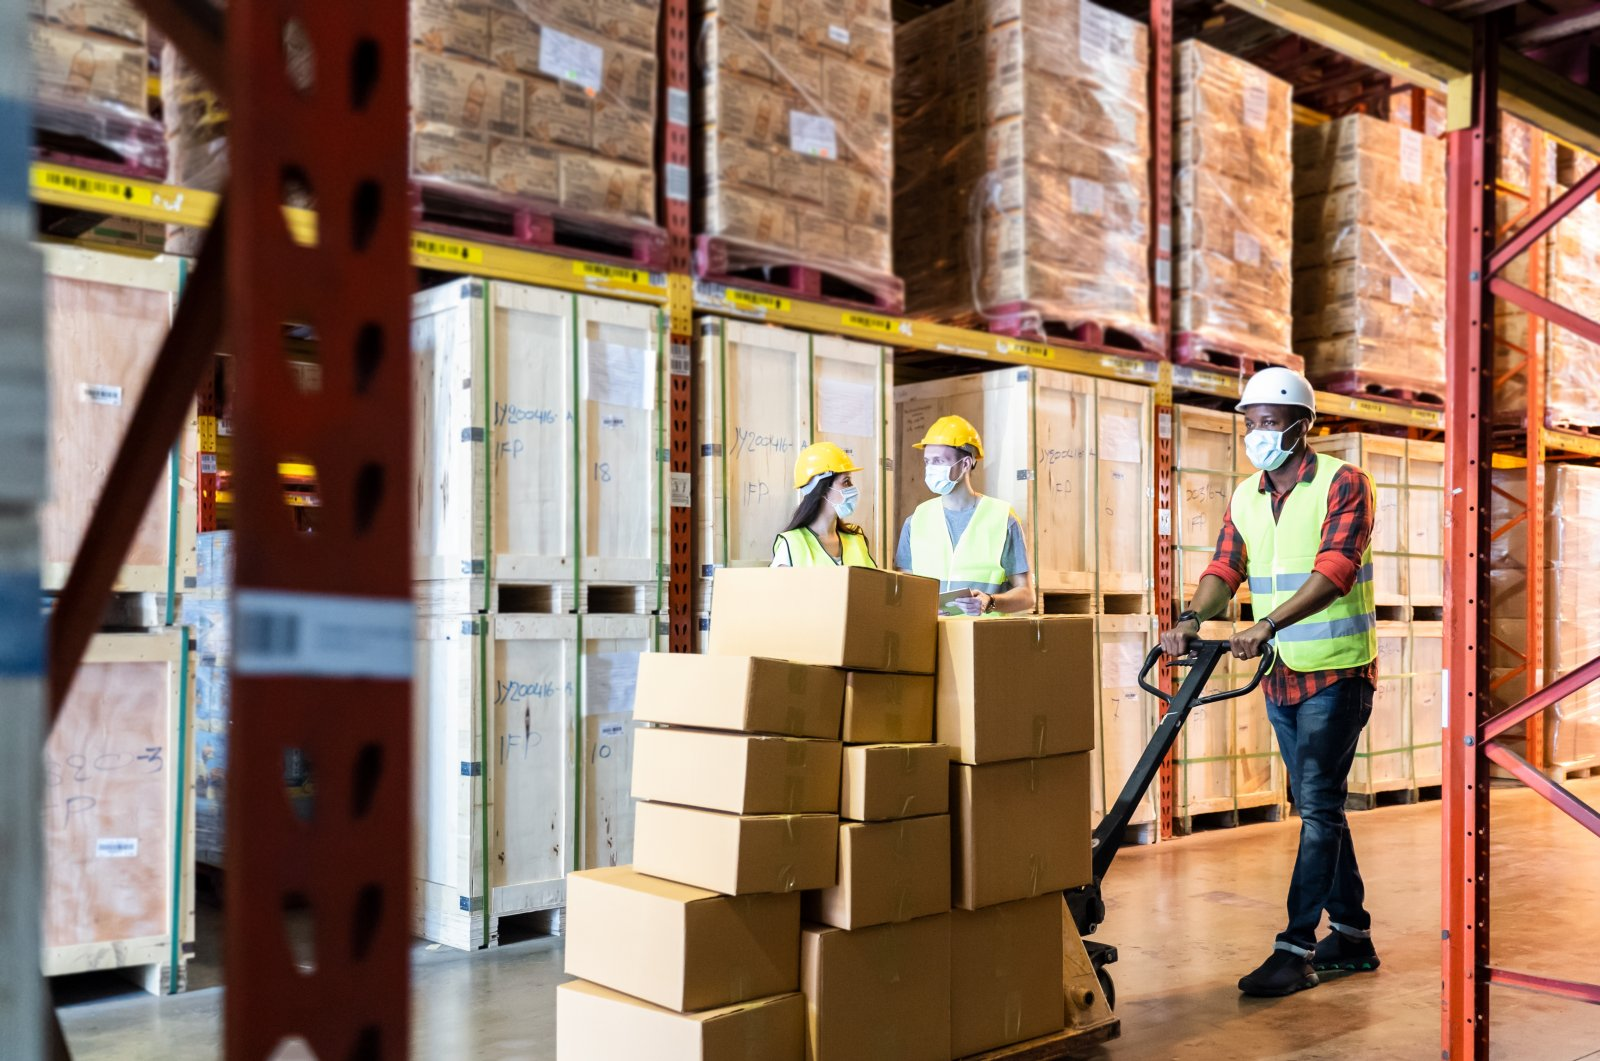 Postal workers in protective masks against the coronavirus work in a warehouse. (Photo by Shutterstock)